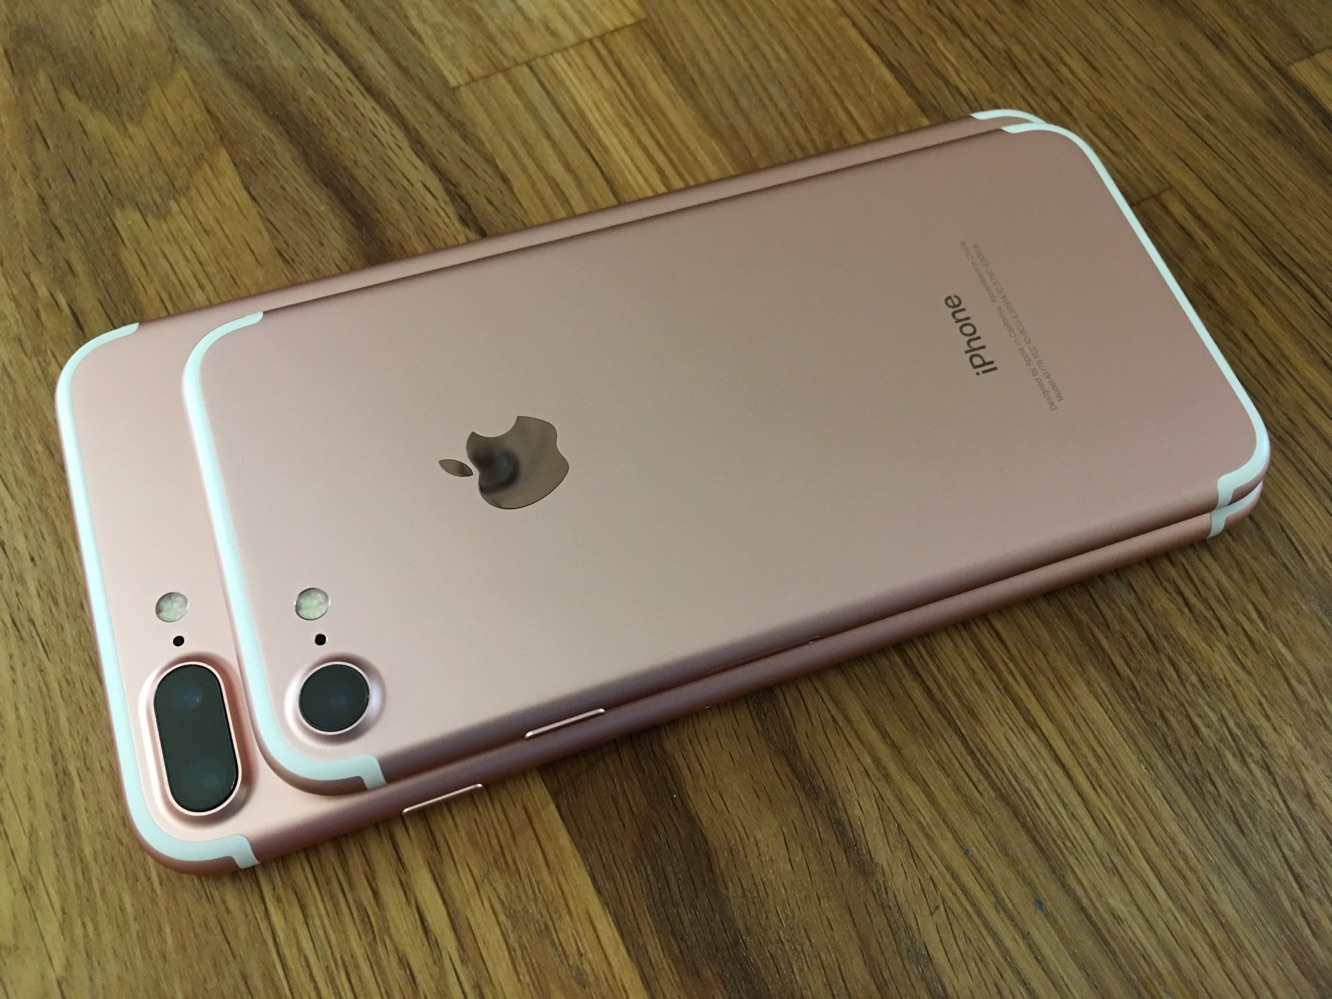 Apples Newest IPhones Have Arrived And Weve Posted Unboxing Photos Of The IPhone 7 Plus Both Seen Here In Rose Gold